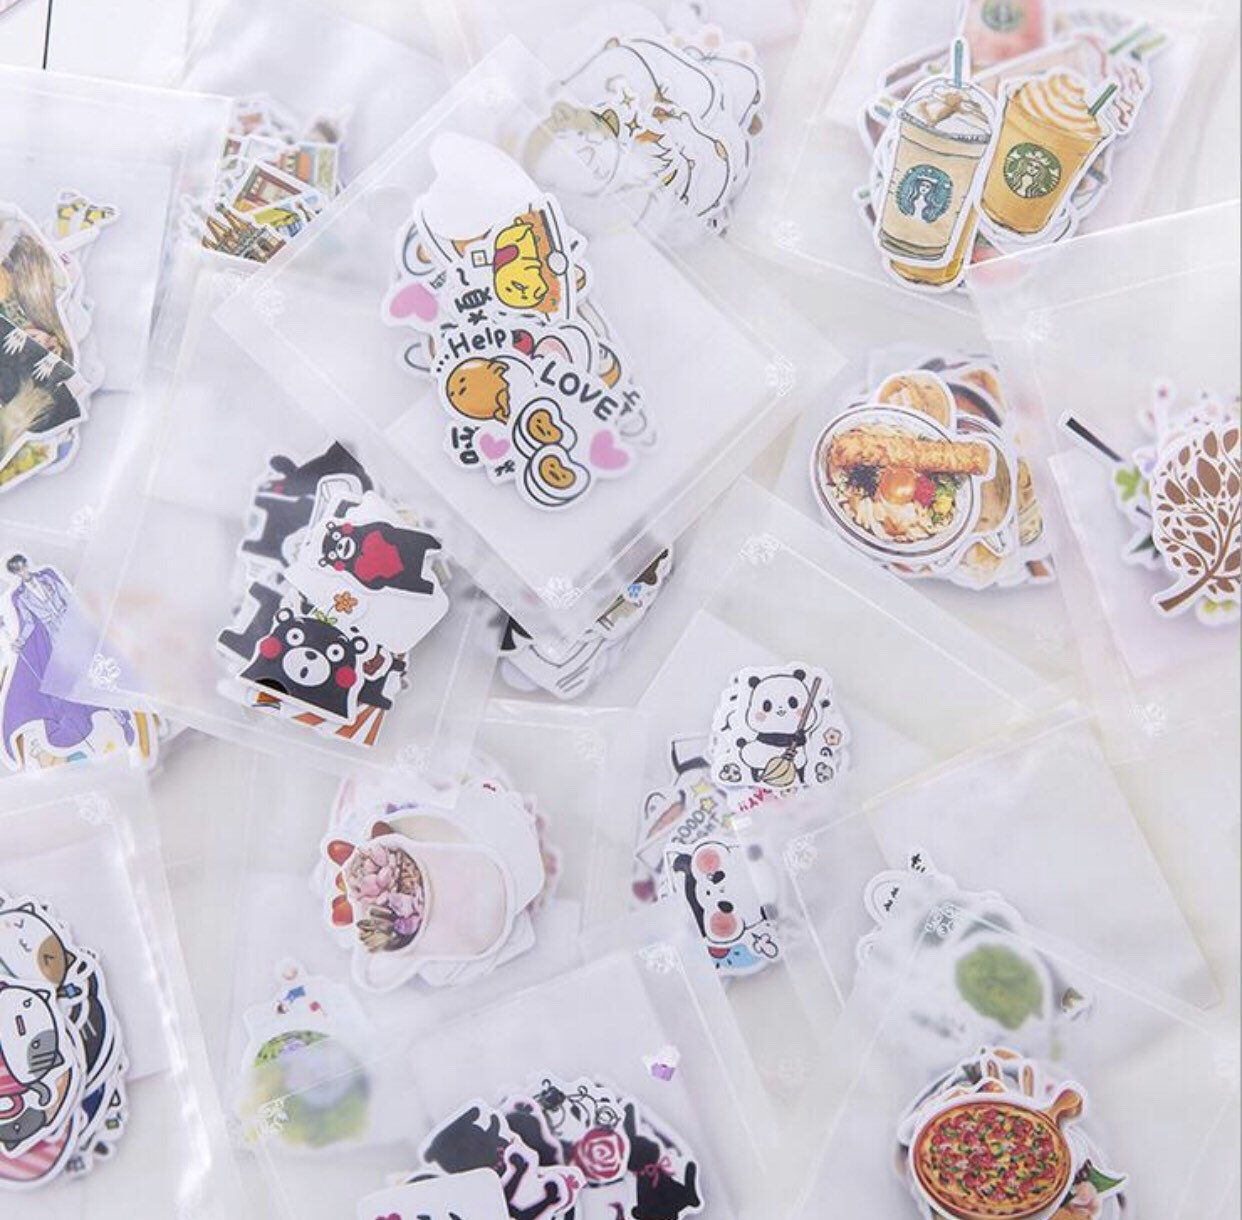 Excited to share this item from my shop: Set of 14 packs - Kawaii Sticker Flake Bundle